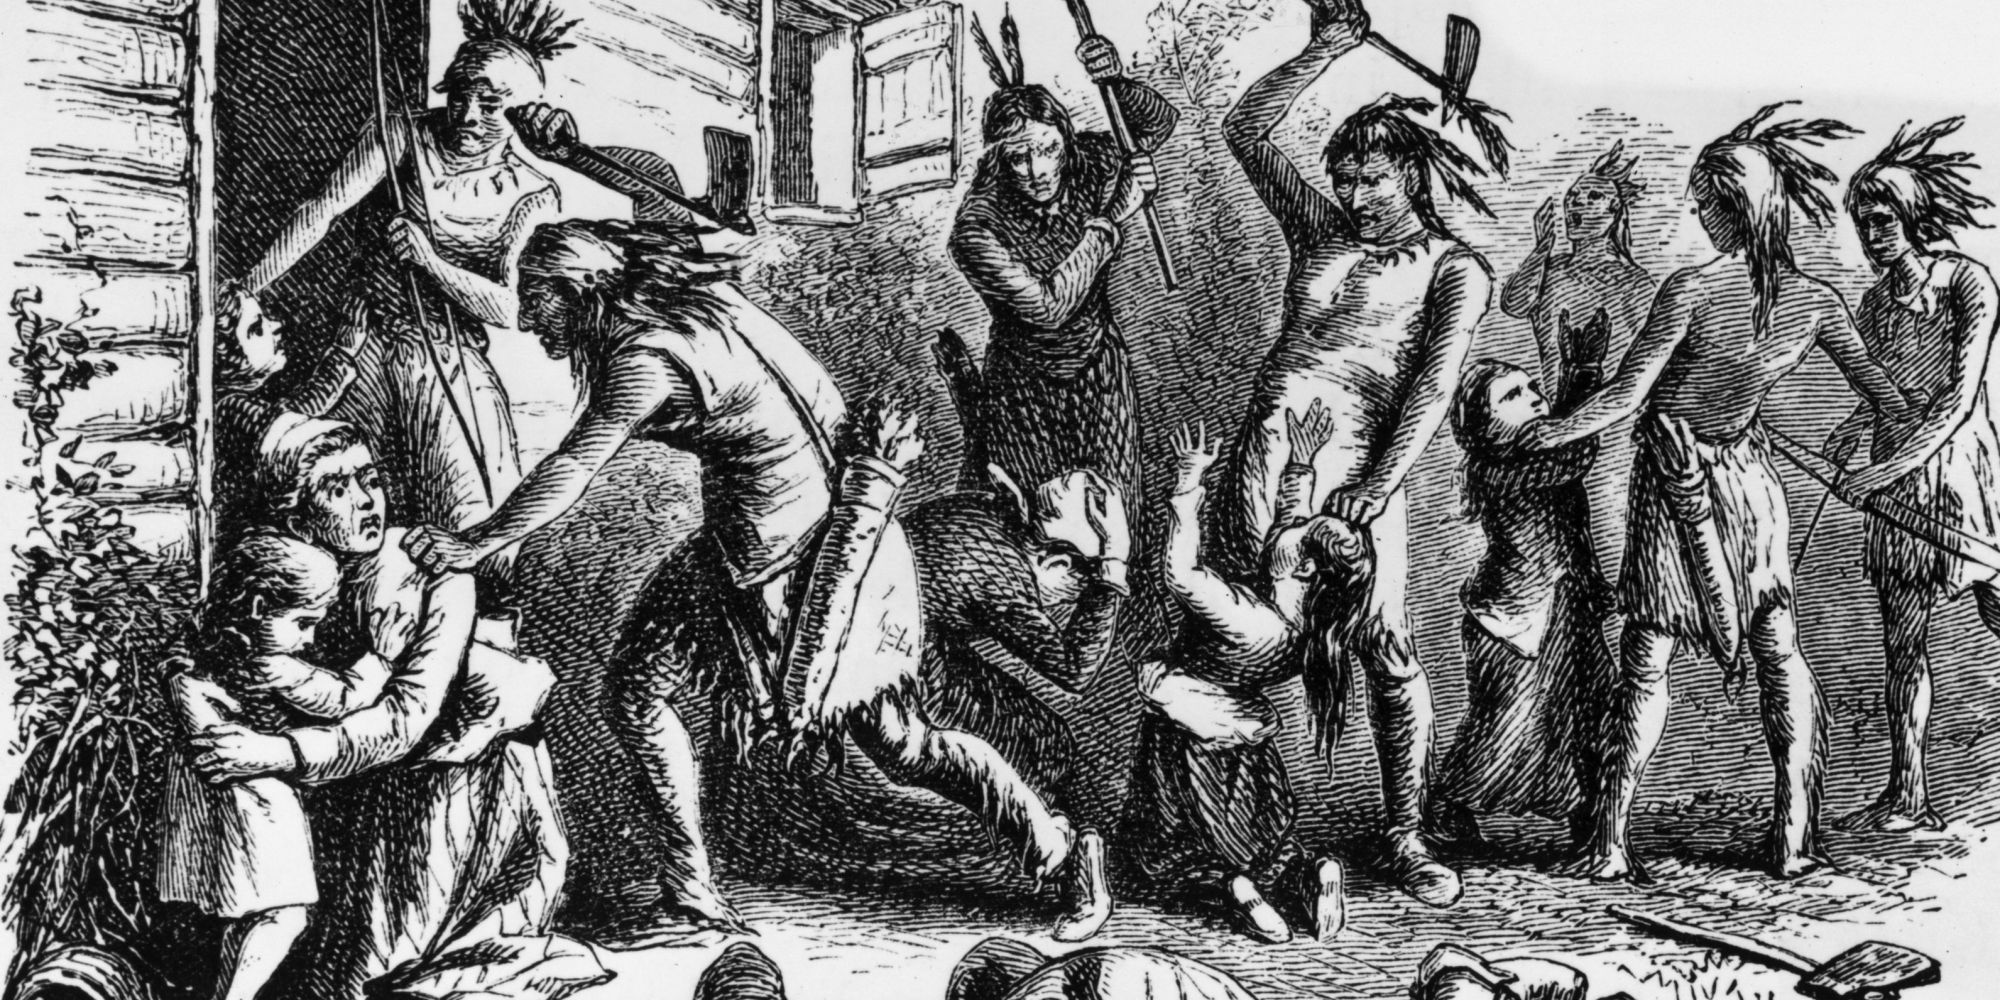 similarities and differences between anne hutchinson and Anne hutchinson (baptized july 20, 1591 – august 20, 1643) was a pioneer settler in massachusetts, rhode island and new netherlands, and the unauthorized minister of a dissident church discussion group hutchinson held bible meetings for women that soon had great appeal to men as well.